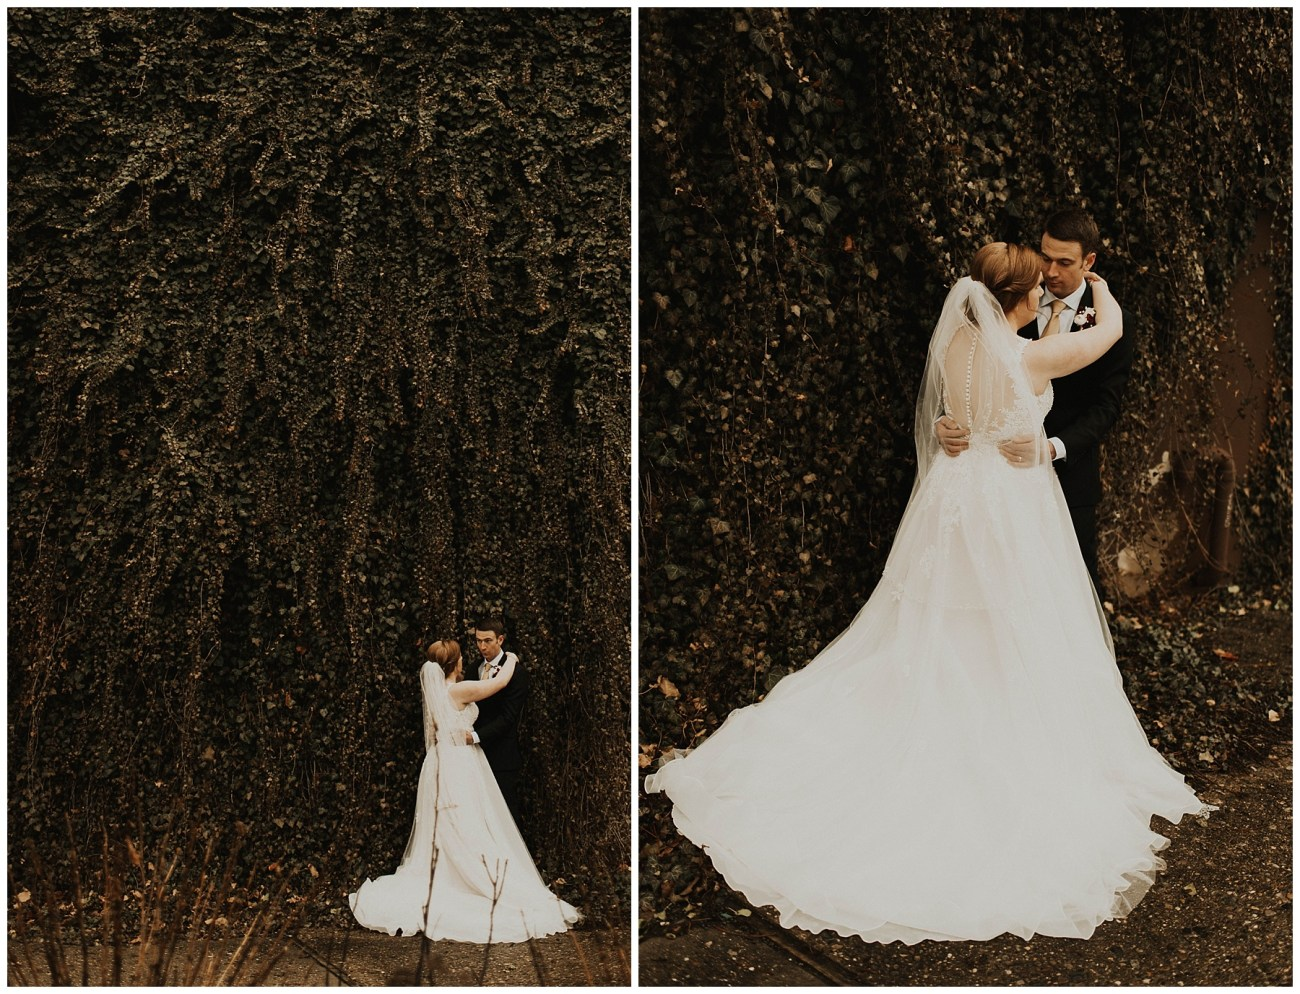 cbc93ff7c Johnny + Eliza // Classic Winter Wedding - Lauren F.otography ...